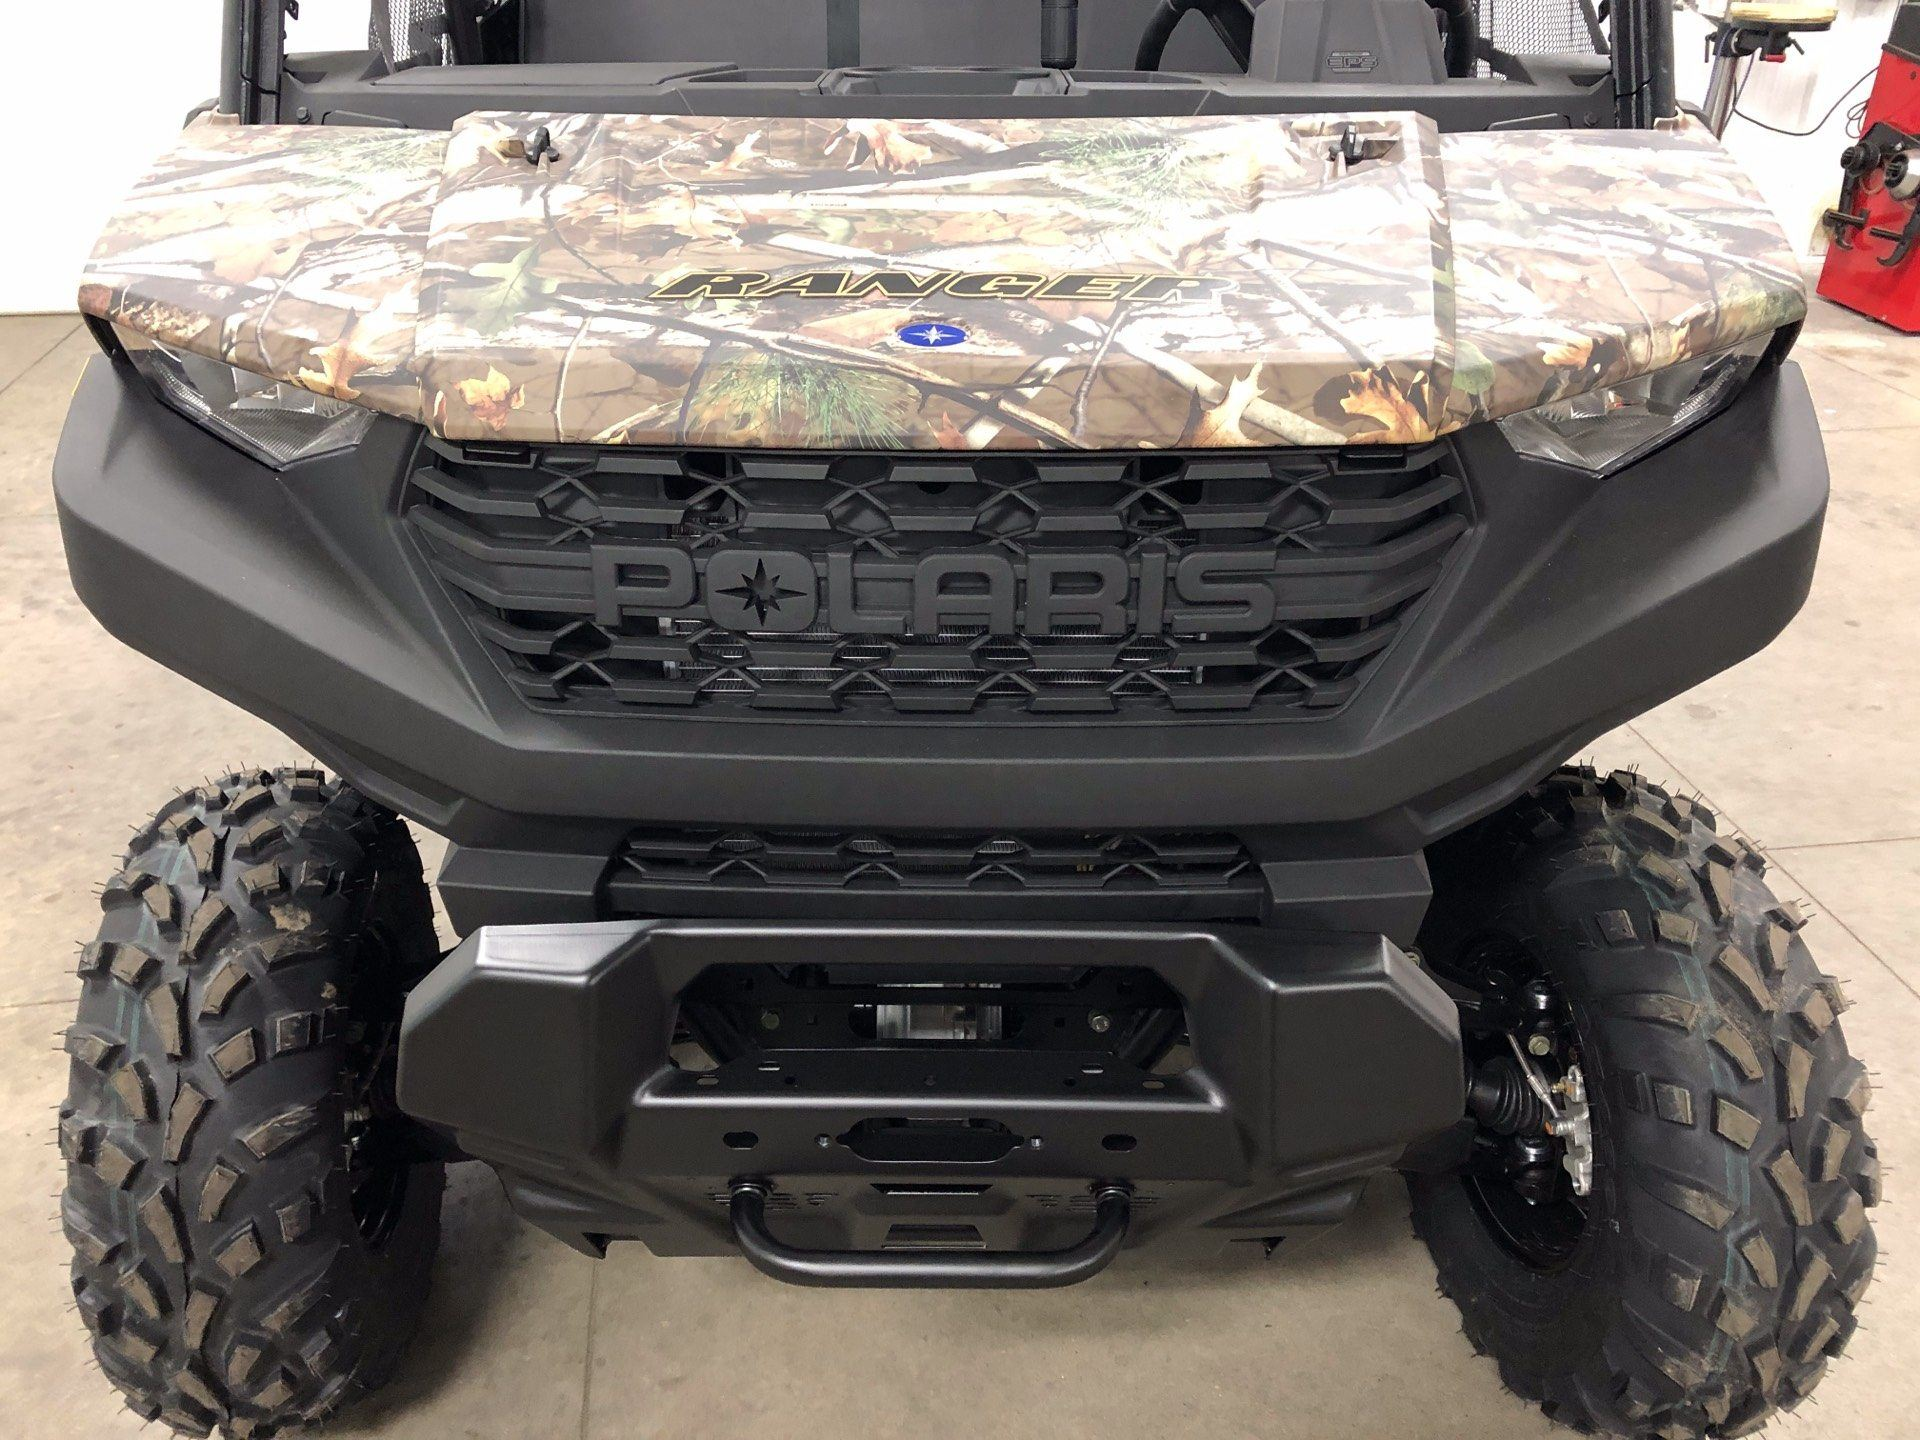 2020 Polaris Ranger 1000 EPS in Altoona, Wisconsin - Photo 3